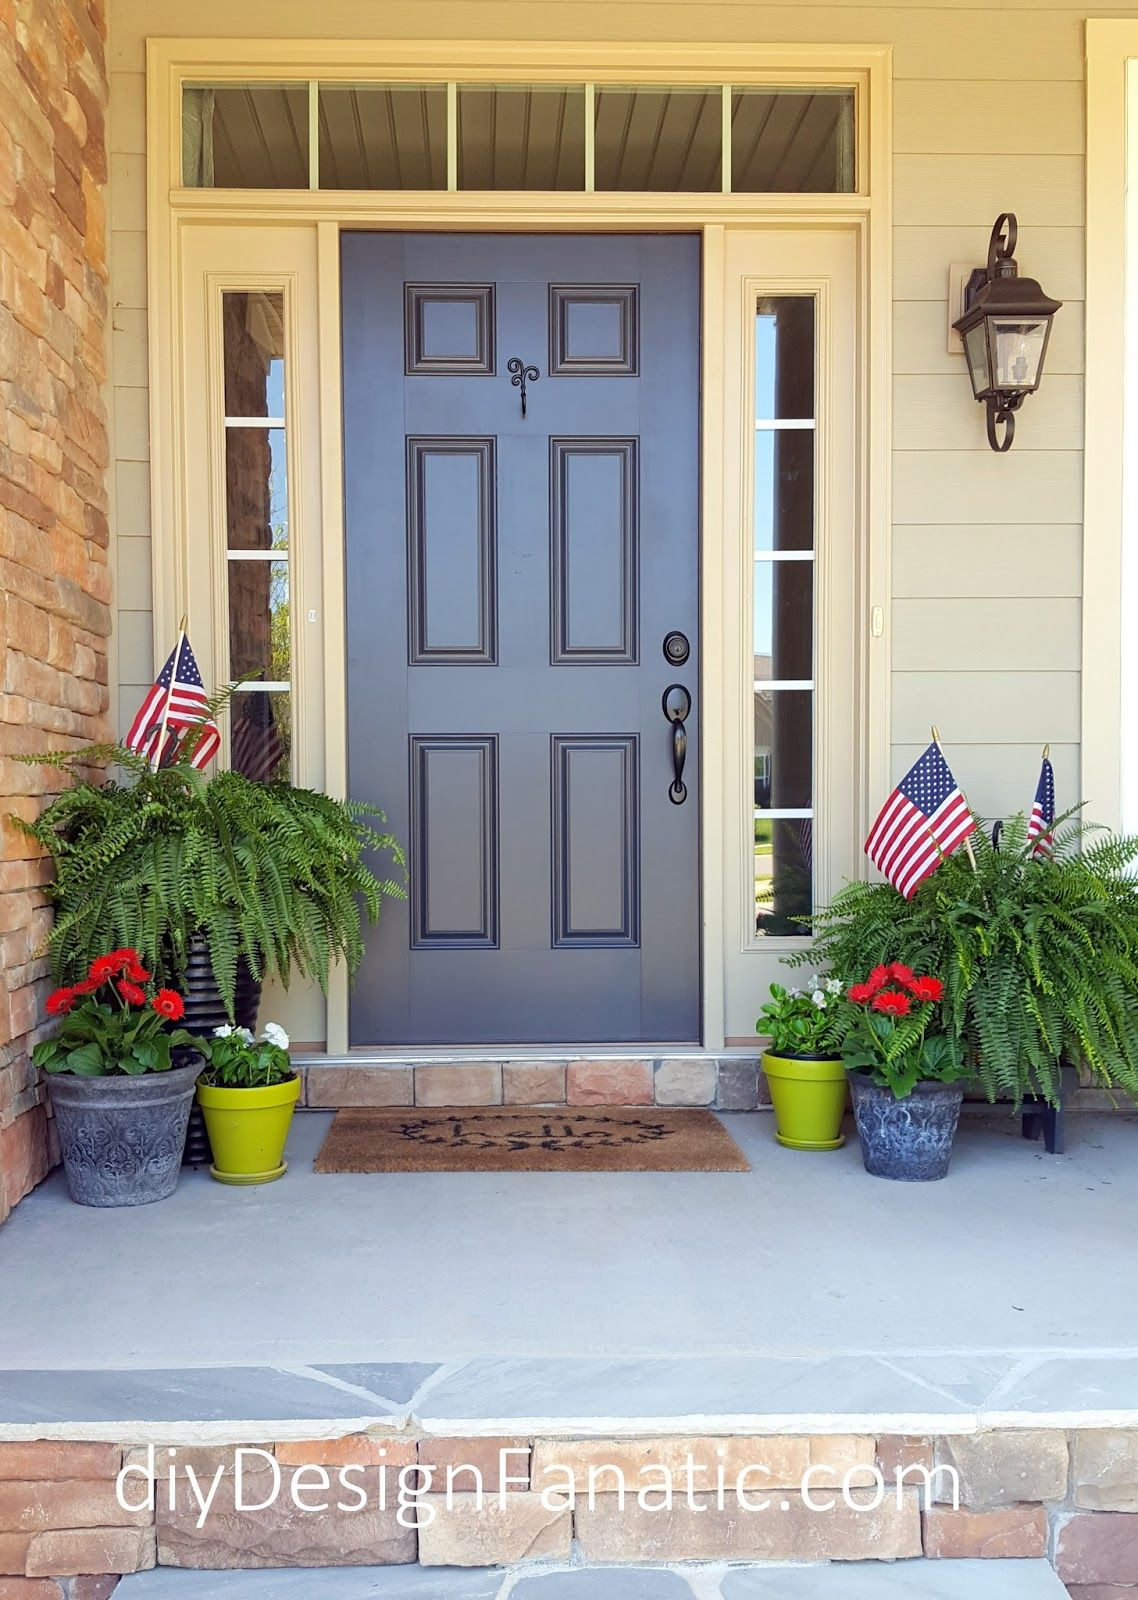 1561975322 424 10 last minute 4th of july porch decor ideas - 10 Last Minute 4th of July Porch Decor Ideas